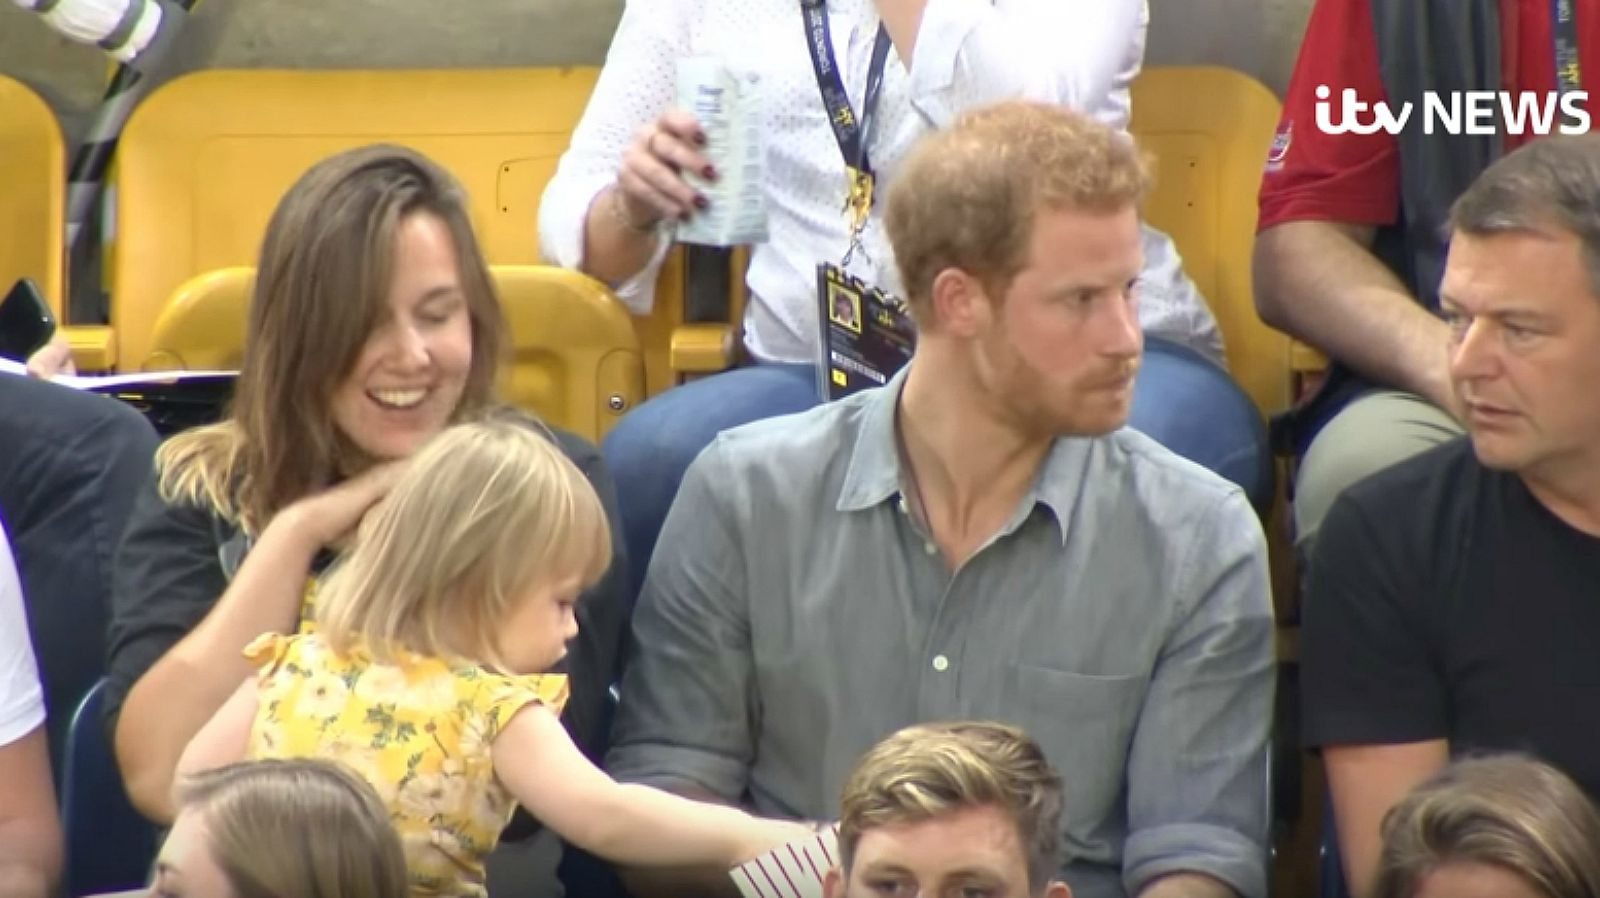 Sneaky Snack Thief Steals Prince Harry's Popcorn at the Invictus Games